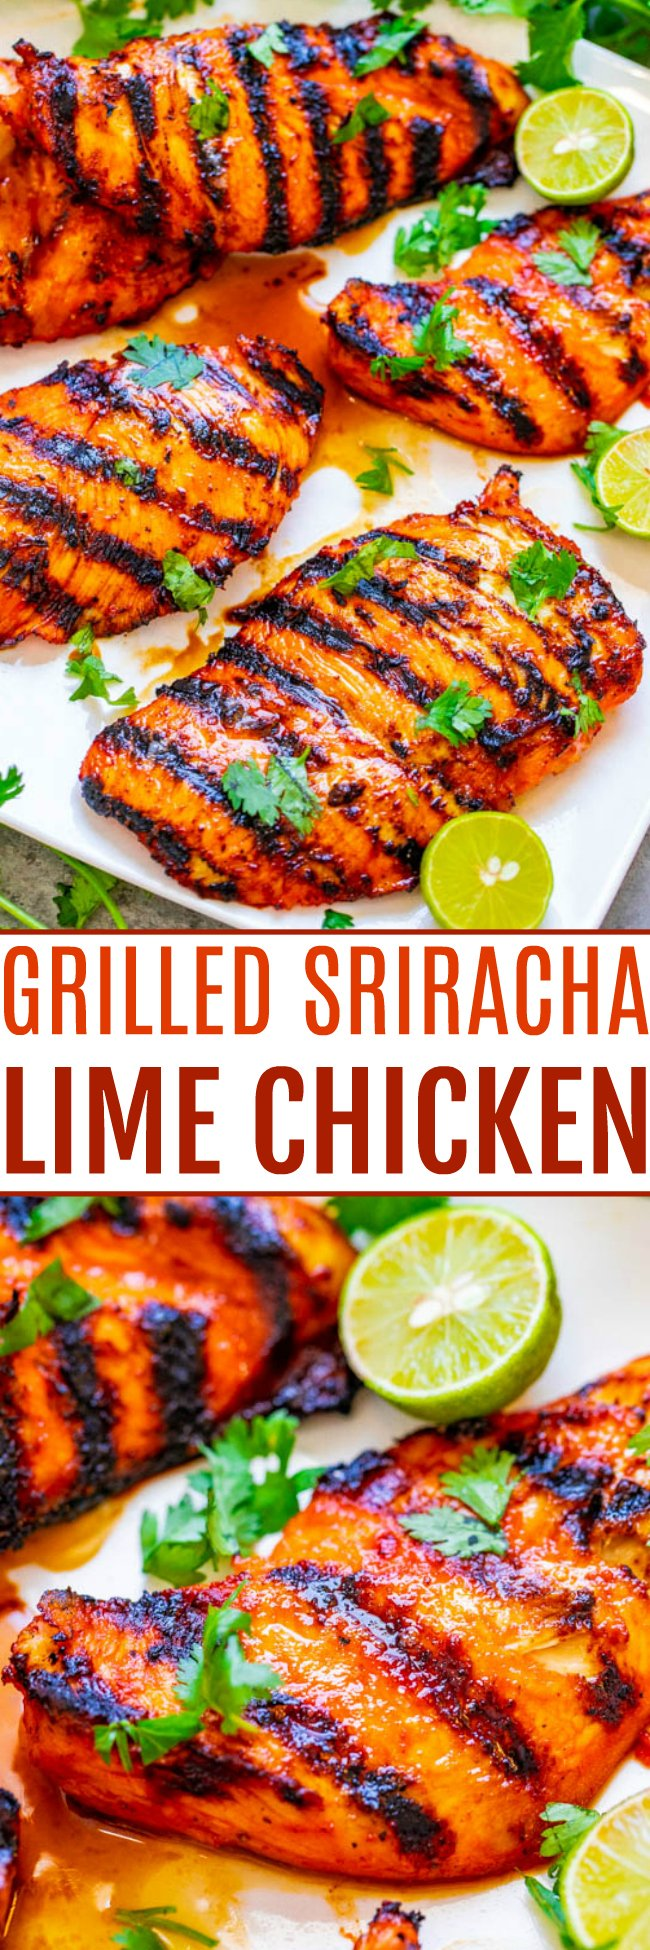 Grilled Lime Sriracha Chicken — EASY, ready in 10 minutes, and the chicken is SPICY, tender, and juicy!! Put this HEALTHY chicken recipe on your summer menu when you want to kick things up a notch!!